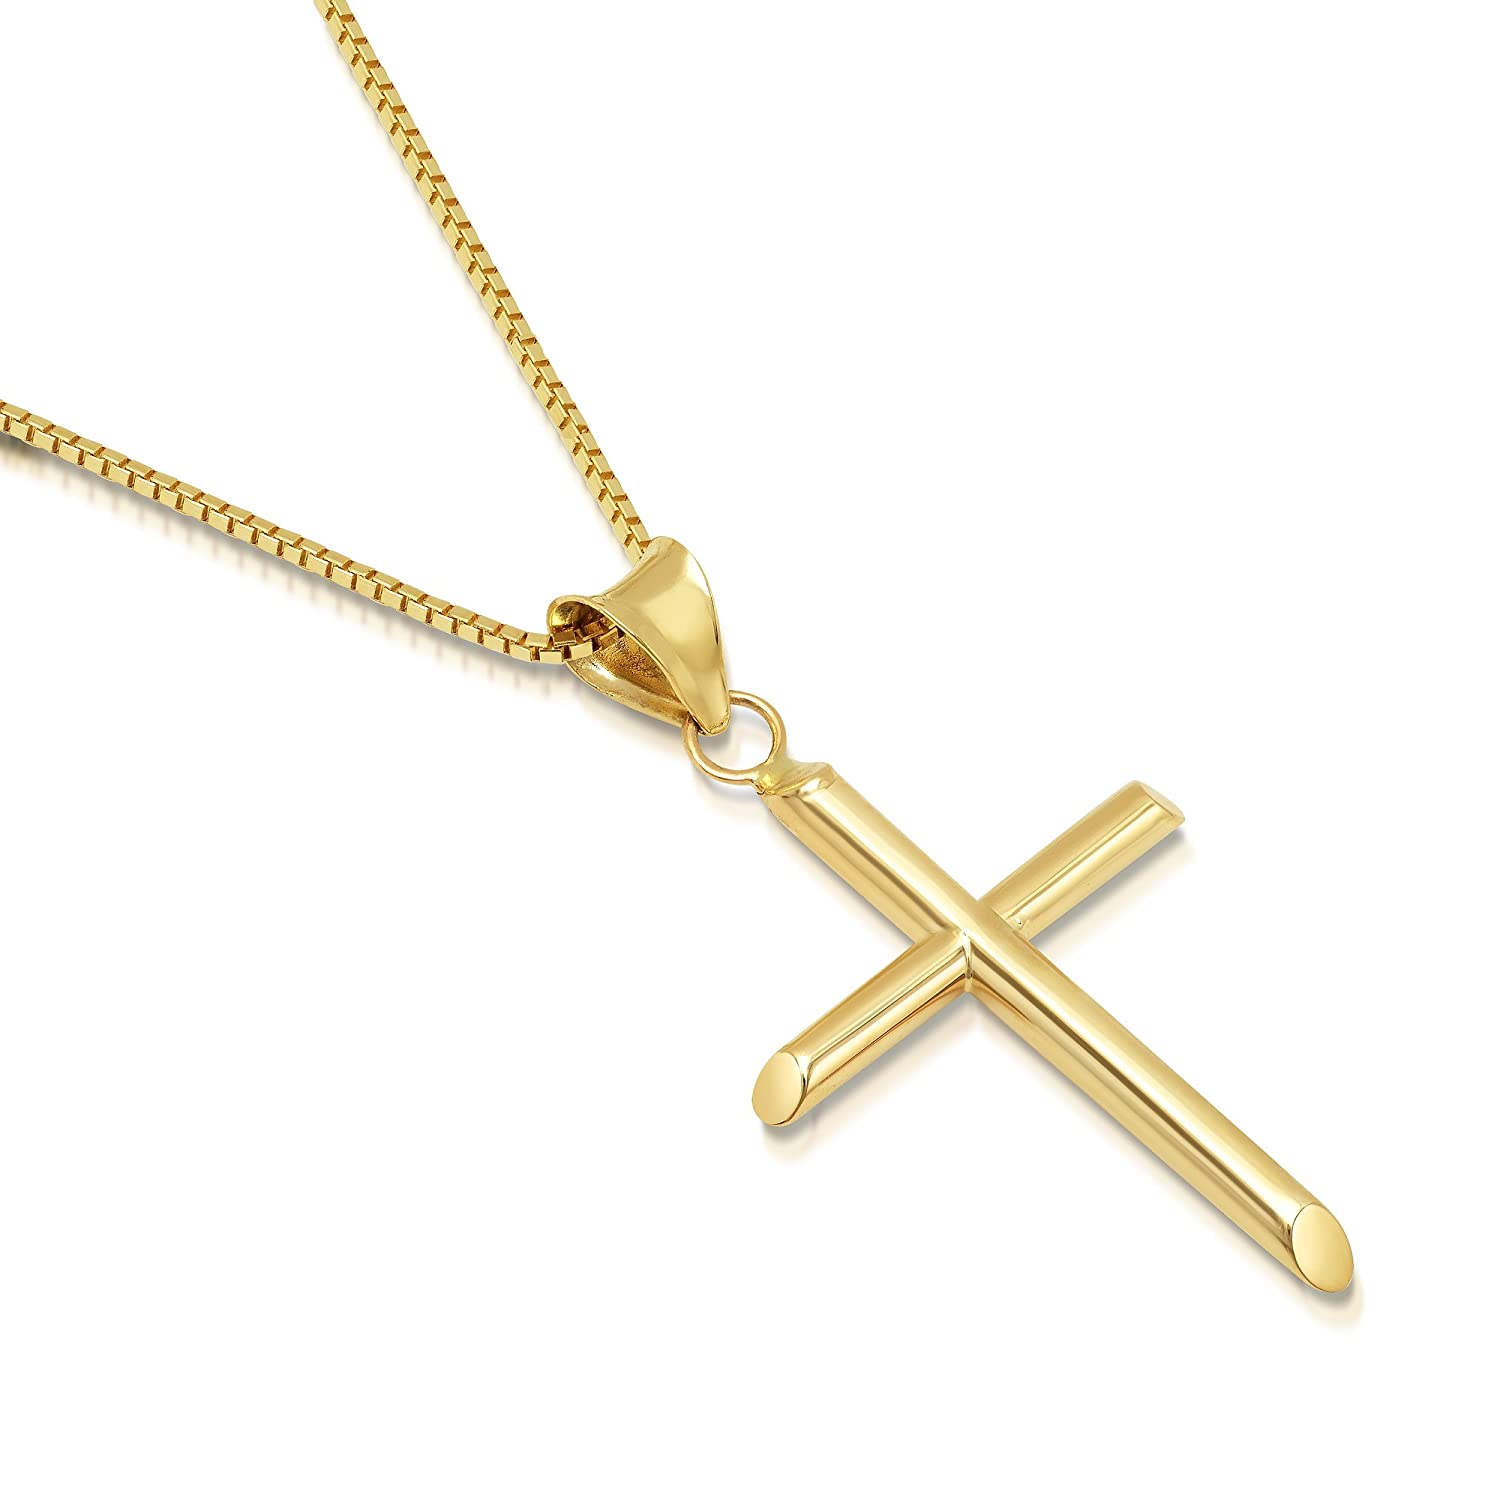 DTLA Solid 14K Gold Box Chain Cross Pendant Necklace - Choose Chain Length and Width